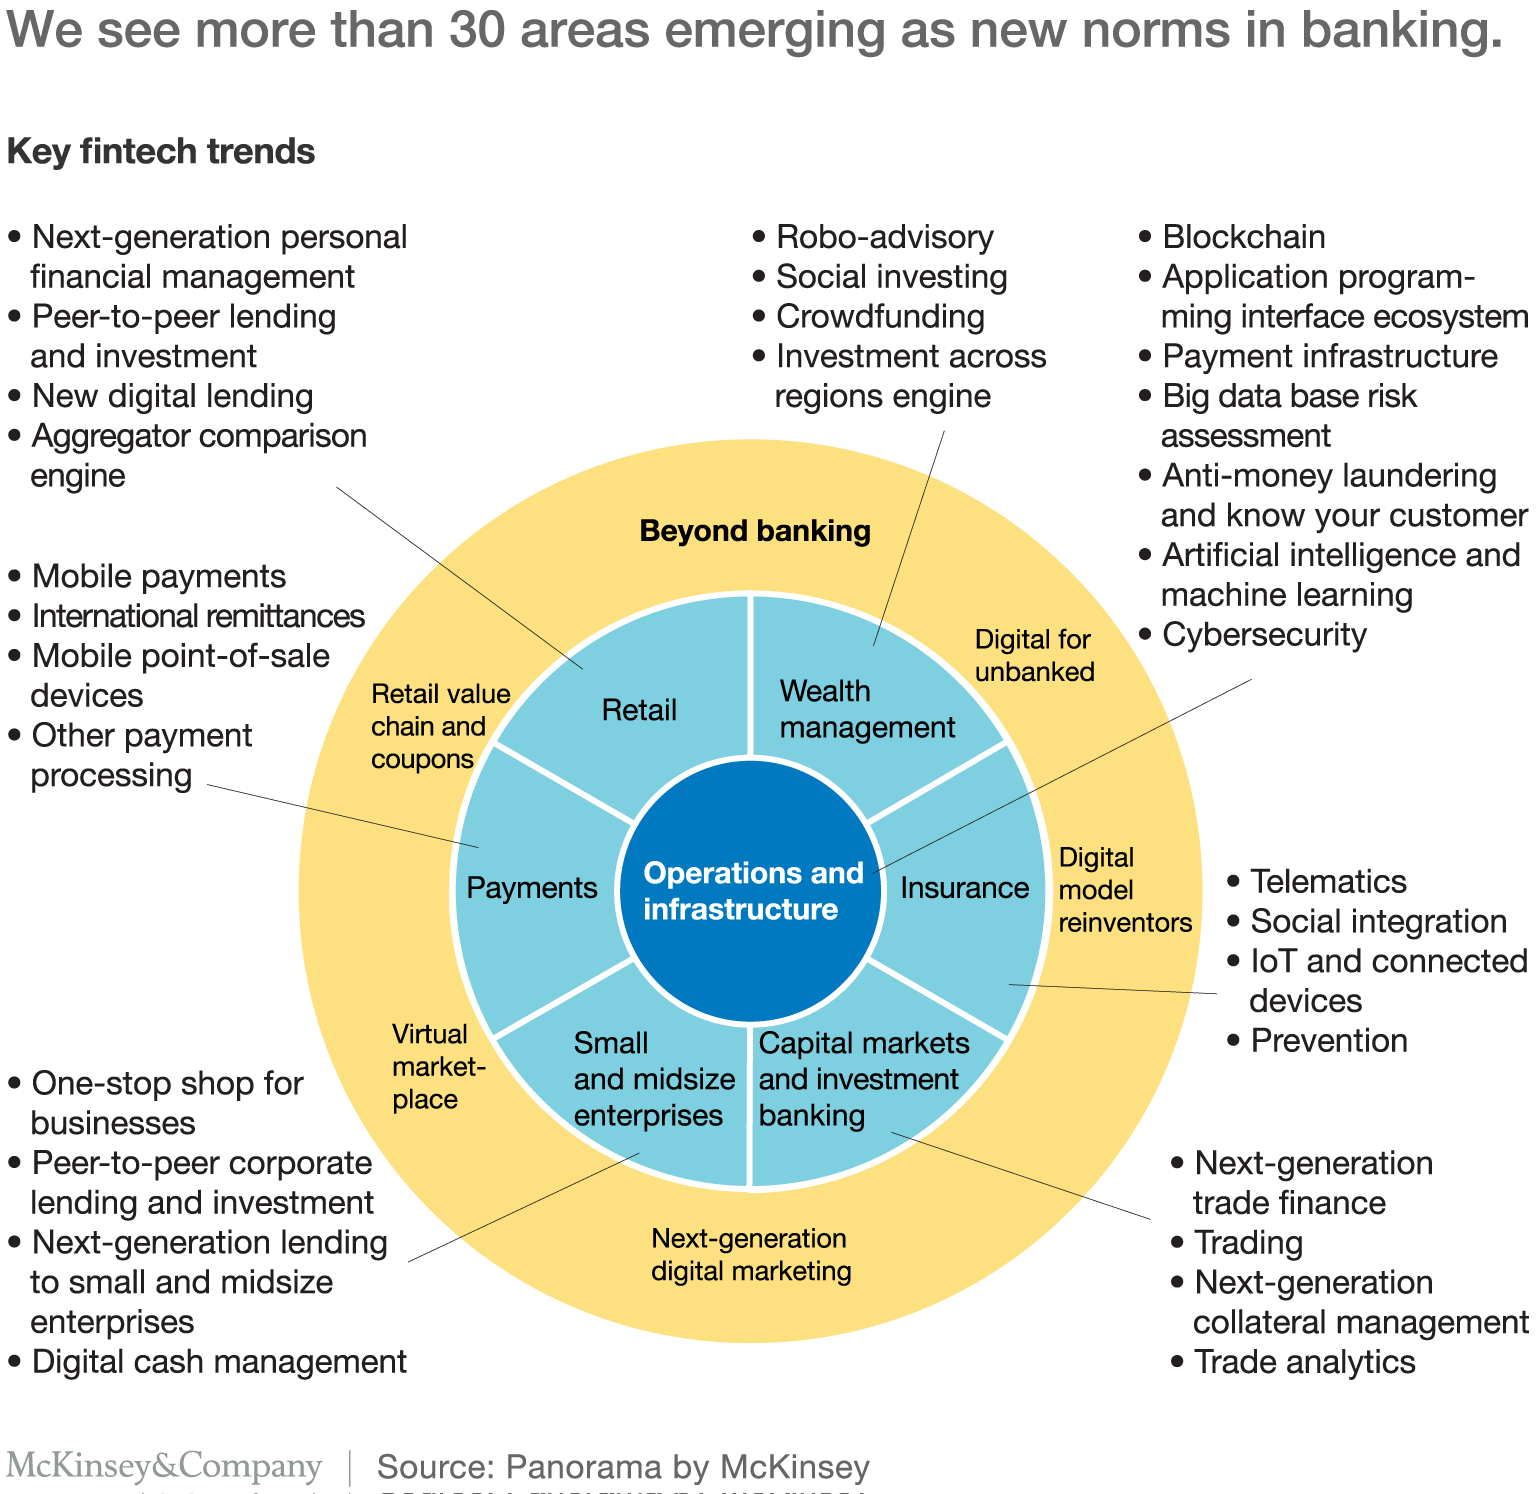 We See More Than 30 Areas Emerging As New Norms In Banking